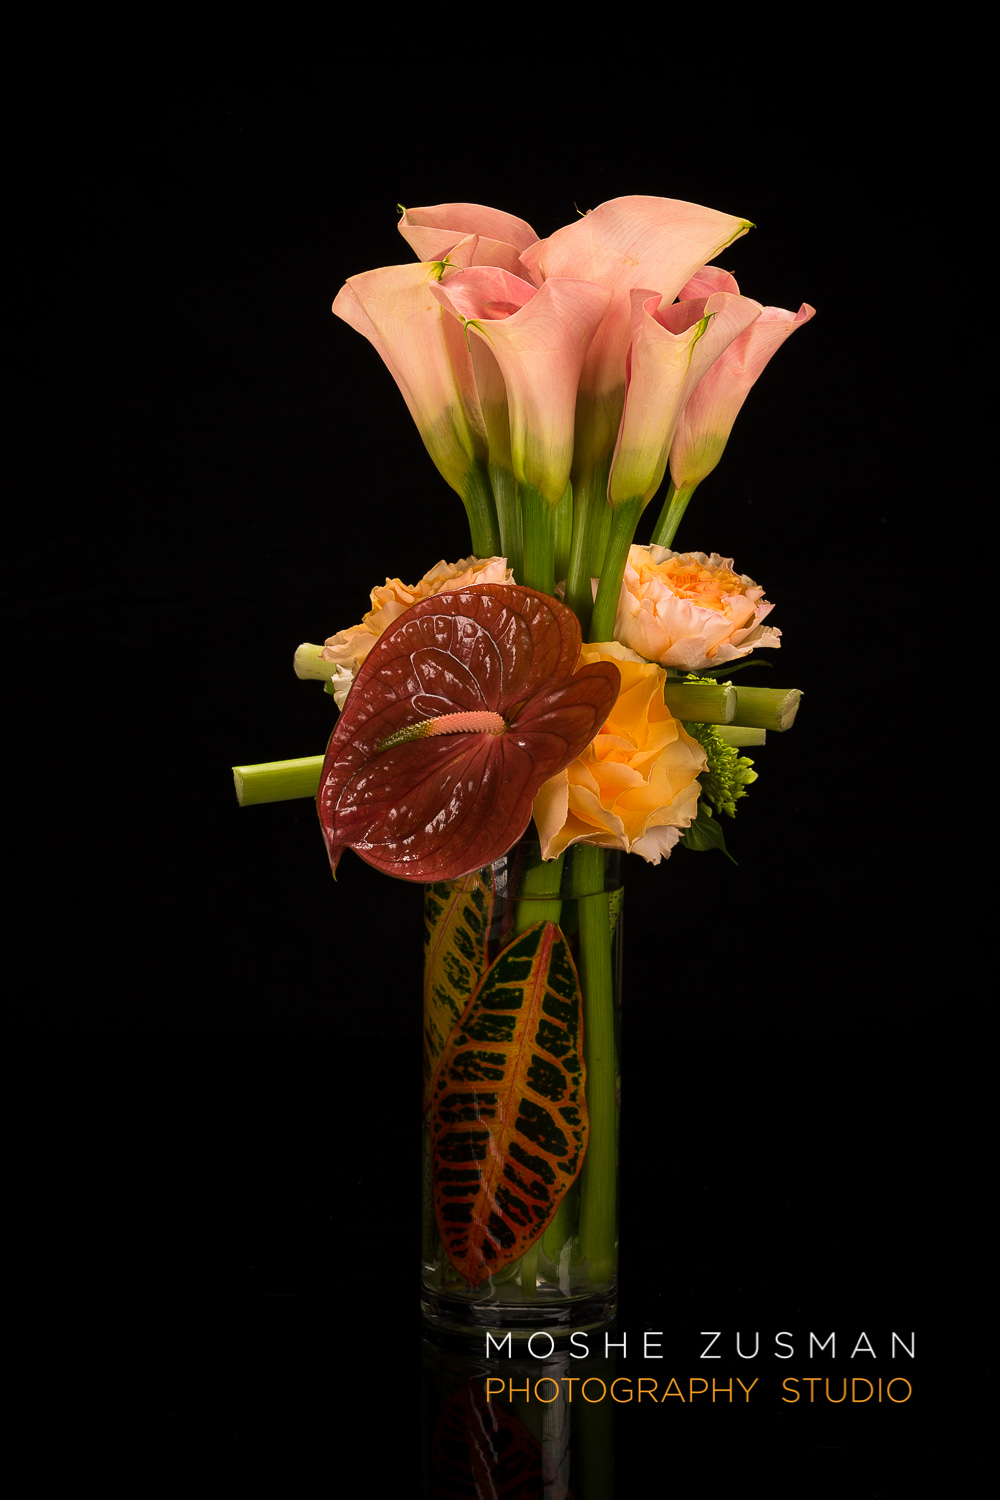 May_Flowers_Reston_Moshe_Zusman_Photography_Valentines_Flowers-07.jpg